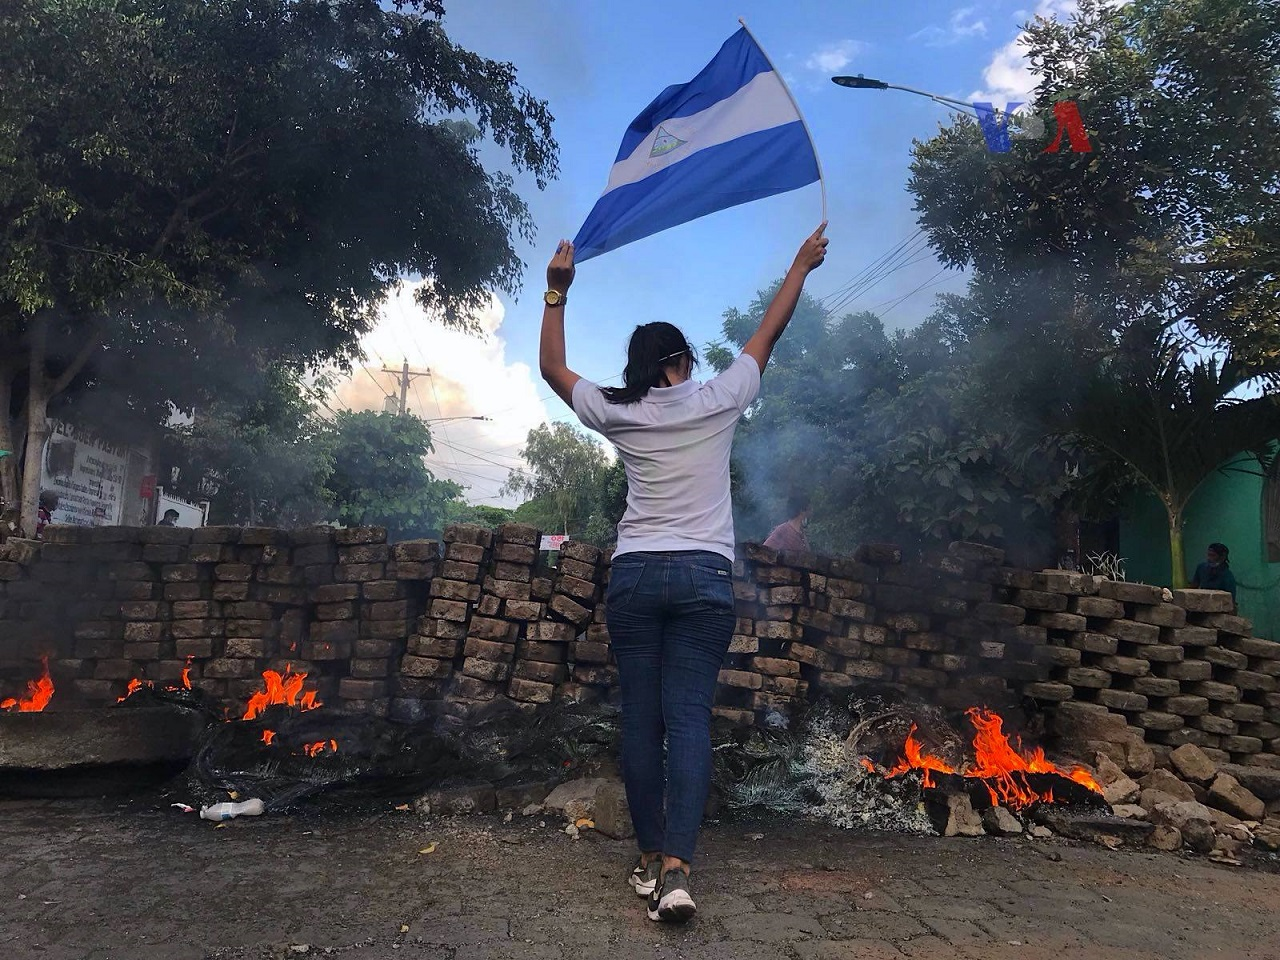 Nicaraguan_protests_woman_and_flag_wikimedia